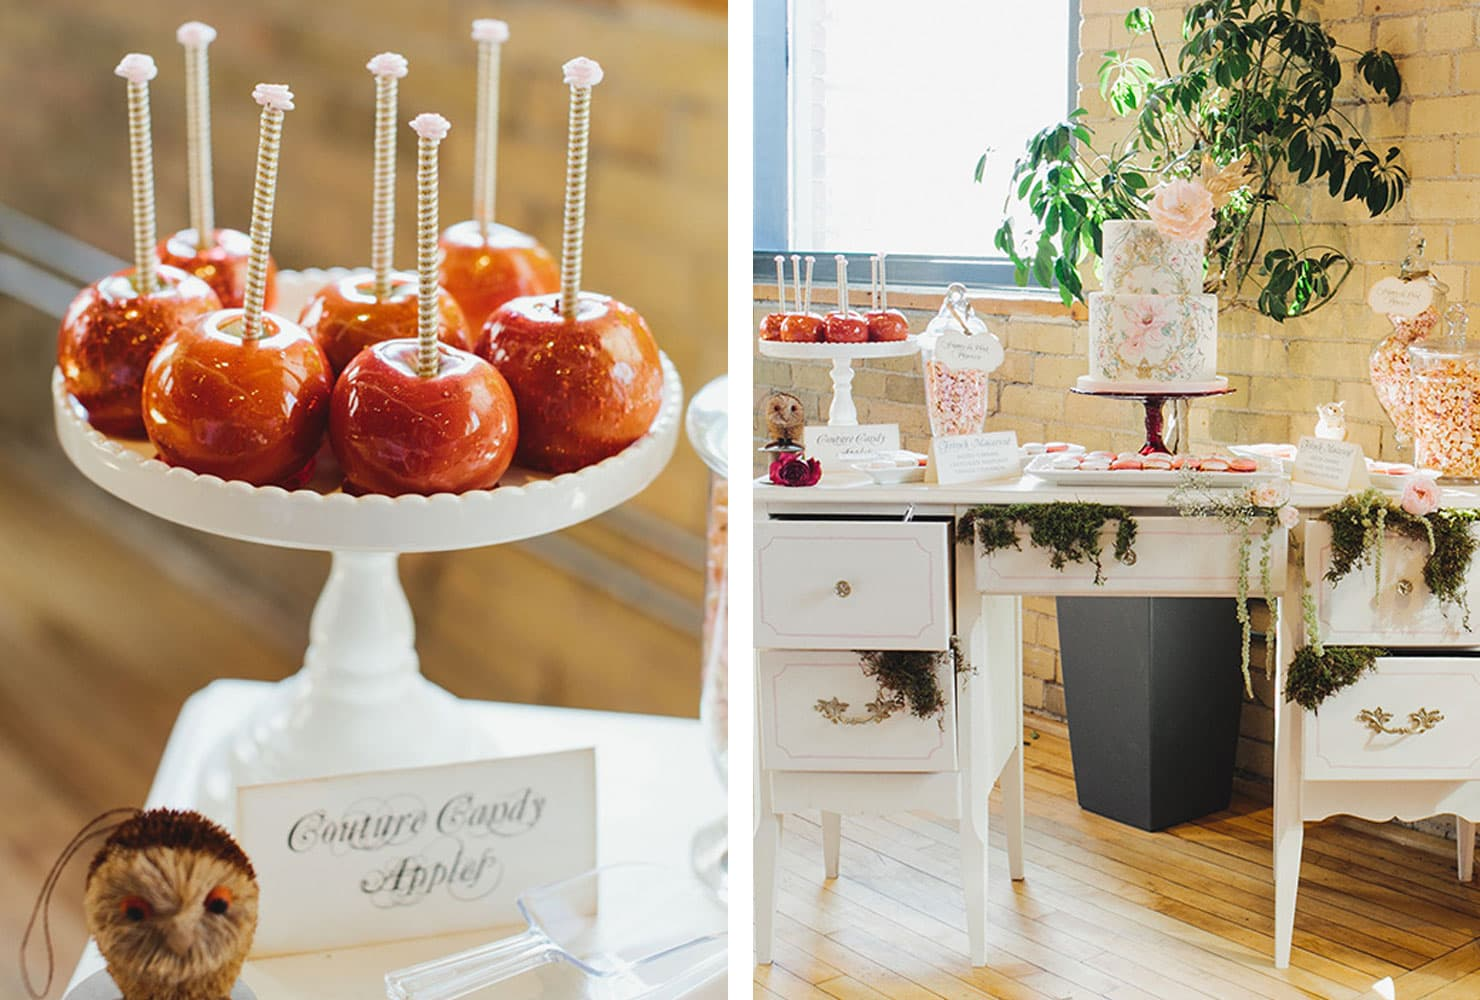 Garden party table with couture caramel apples